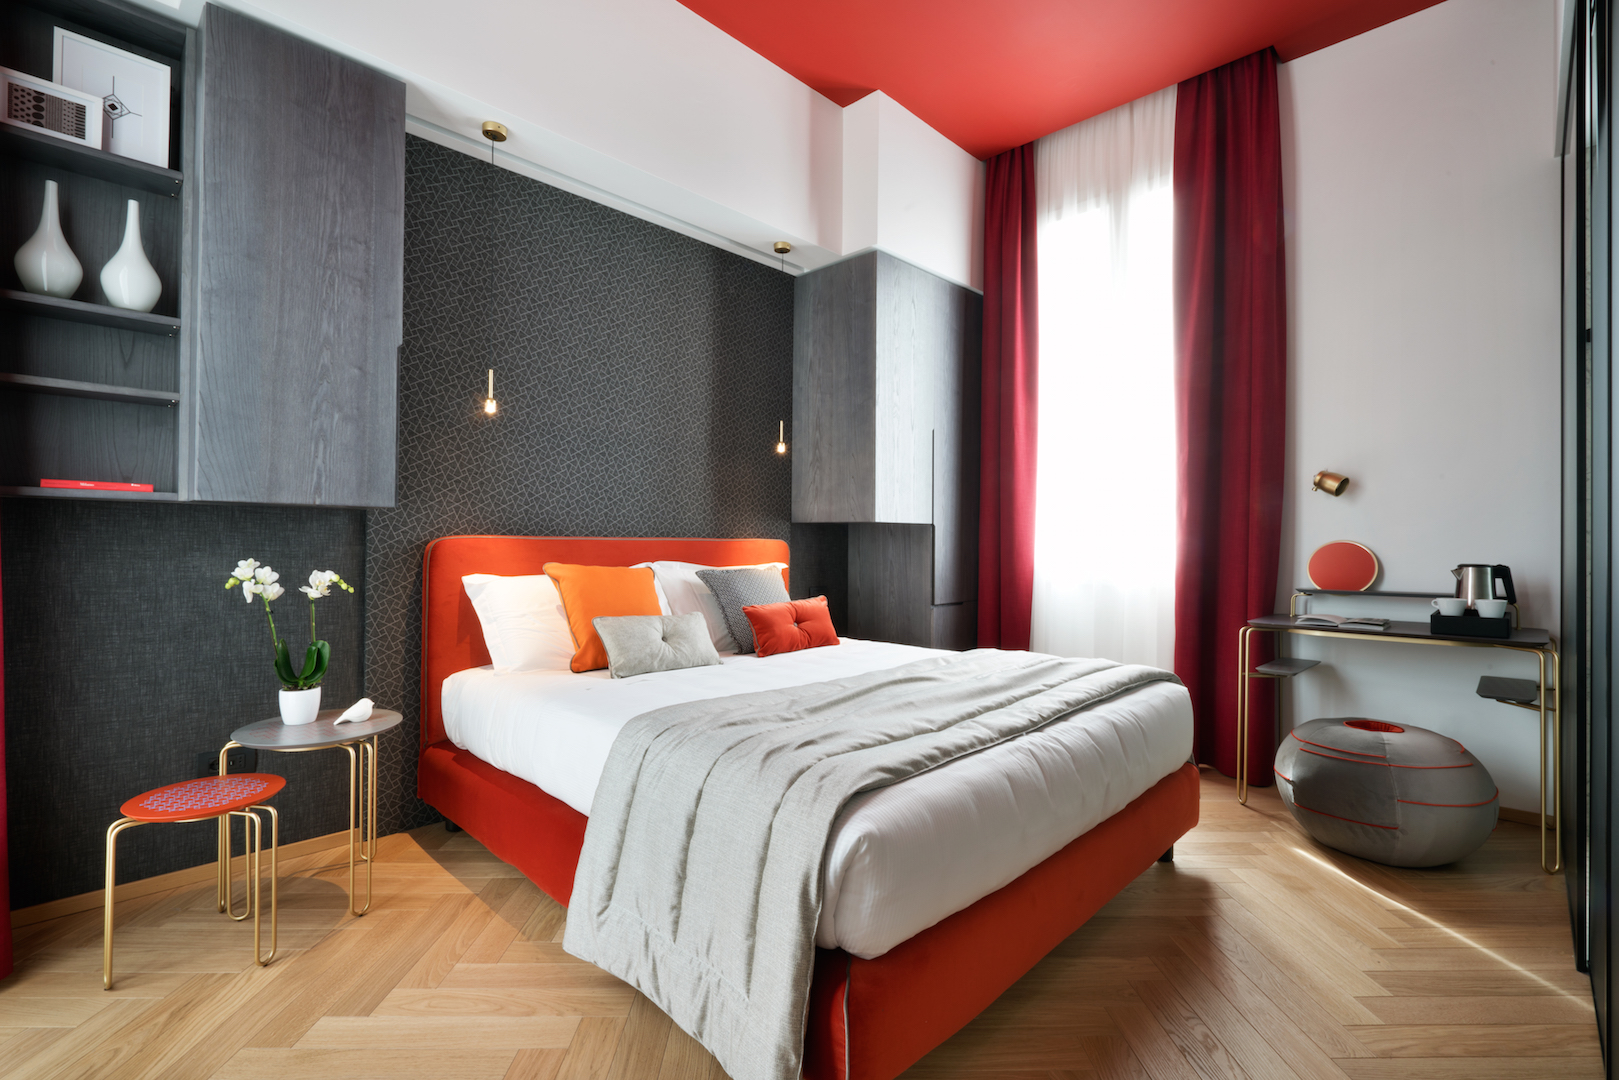 conti guest house the new hospitality in milan stylux en On conti guest house